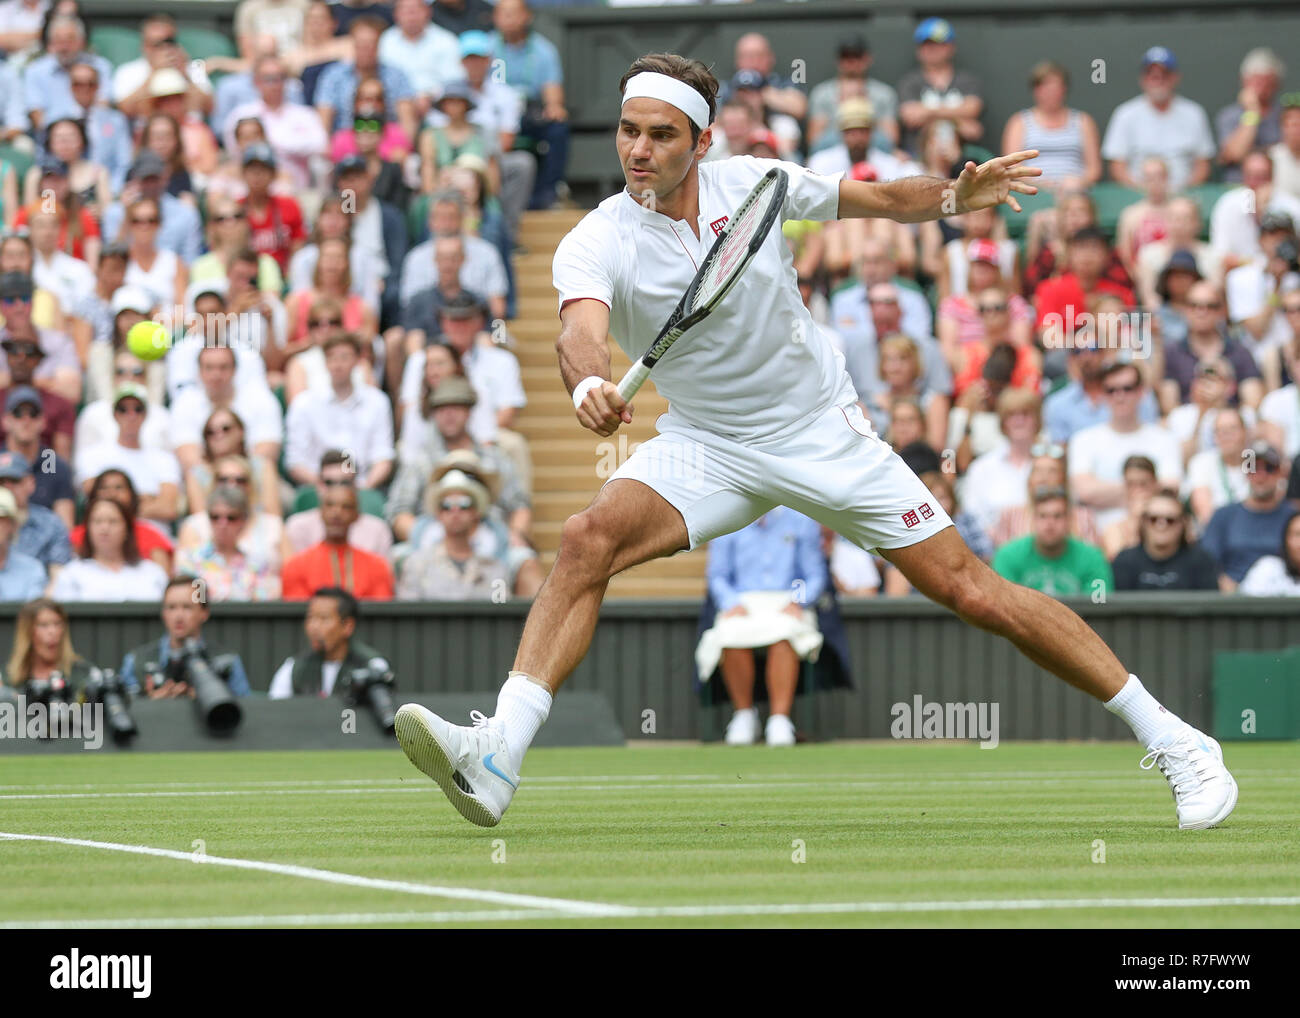 Swiss player Roger Federer in action  at Wimbledon, London, Great Britain, United Kingdom. - Stock Image